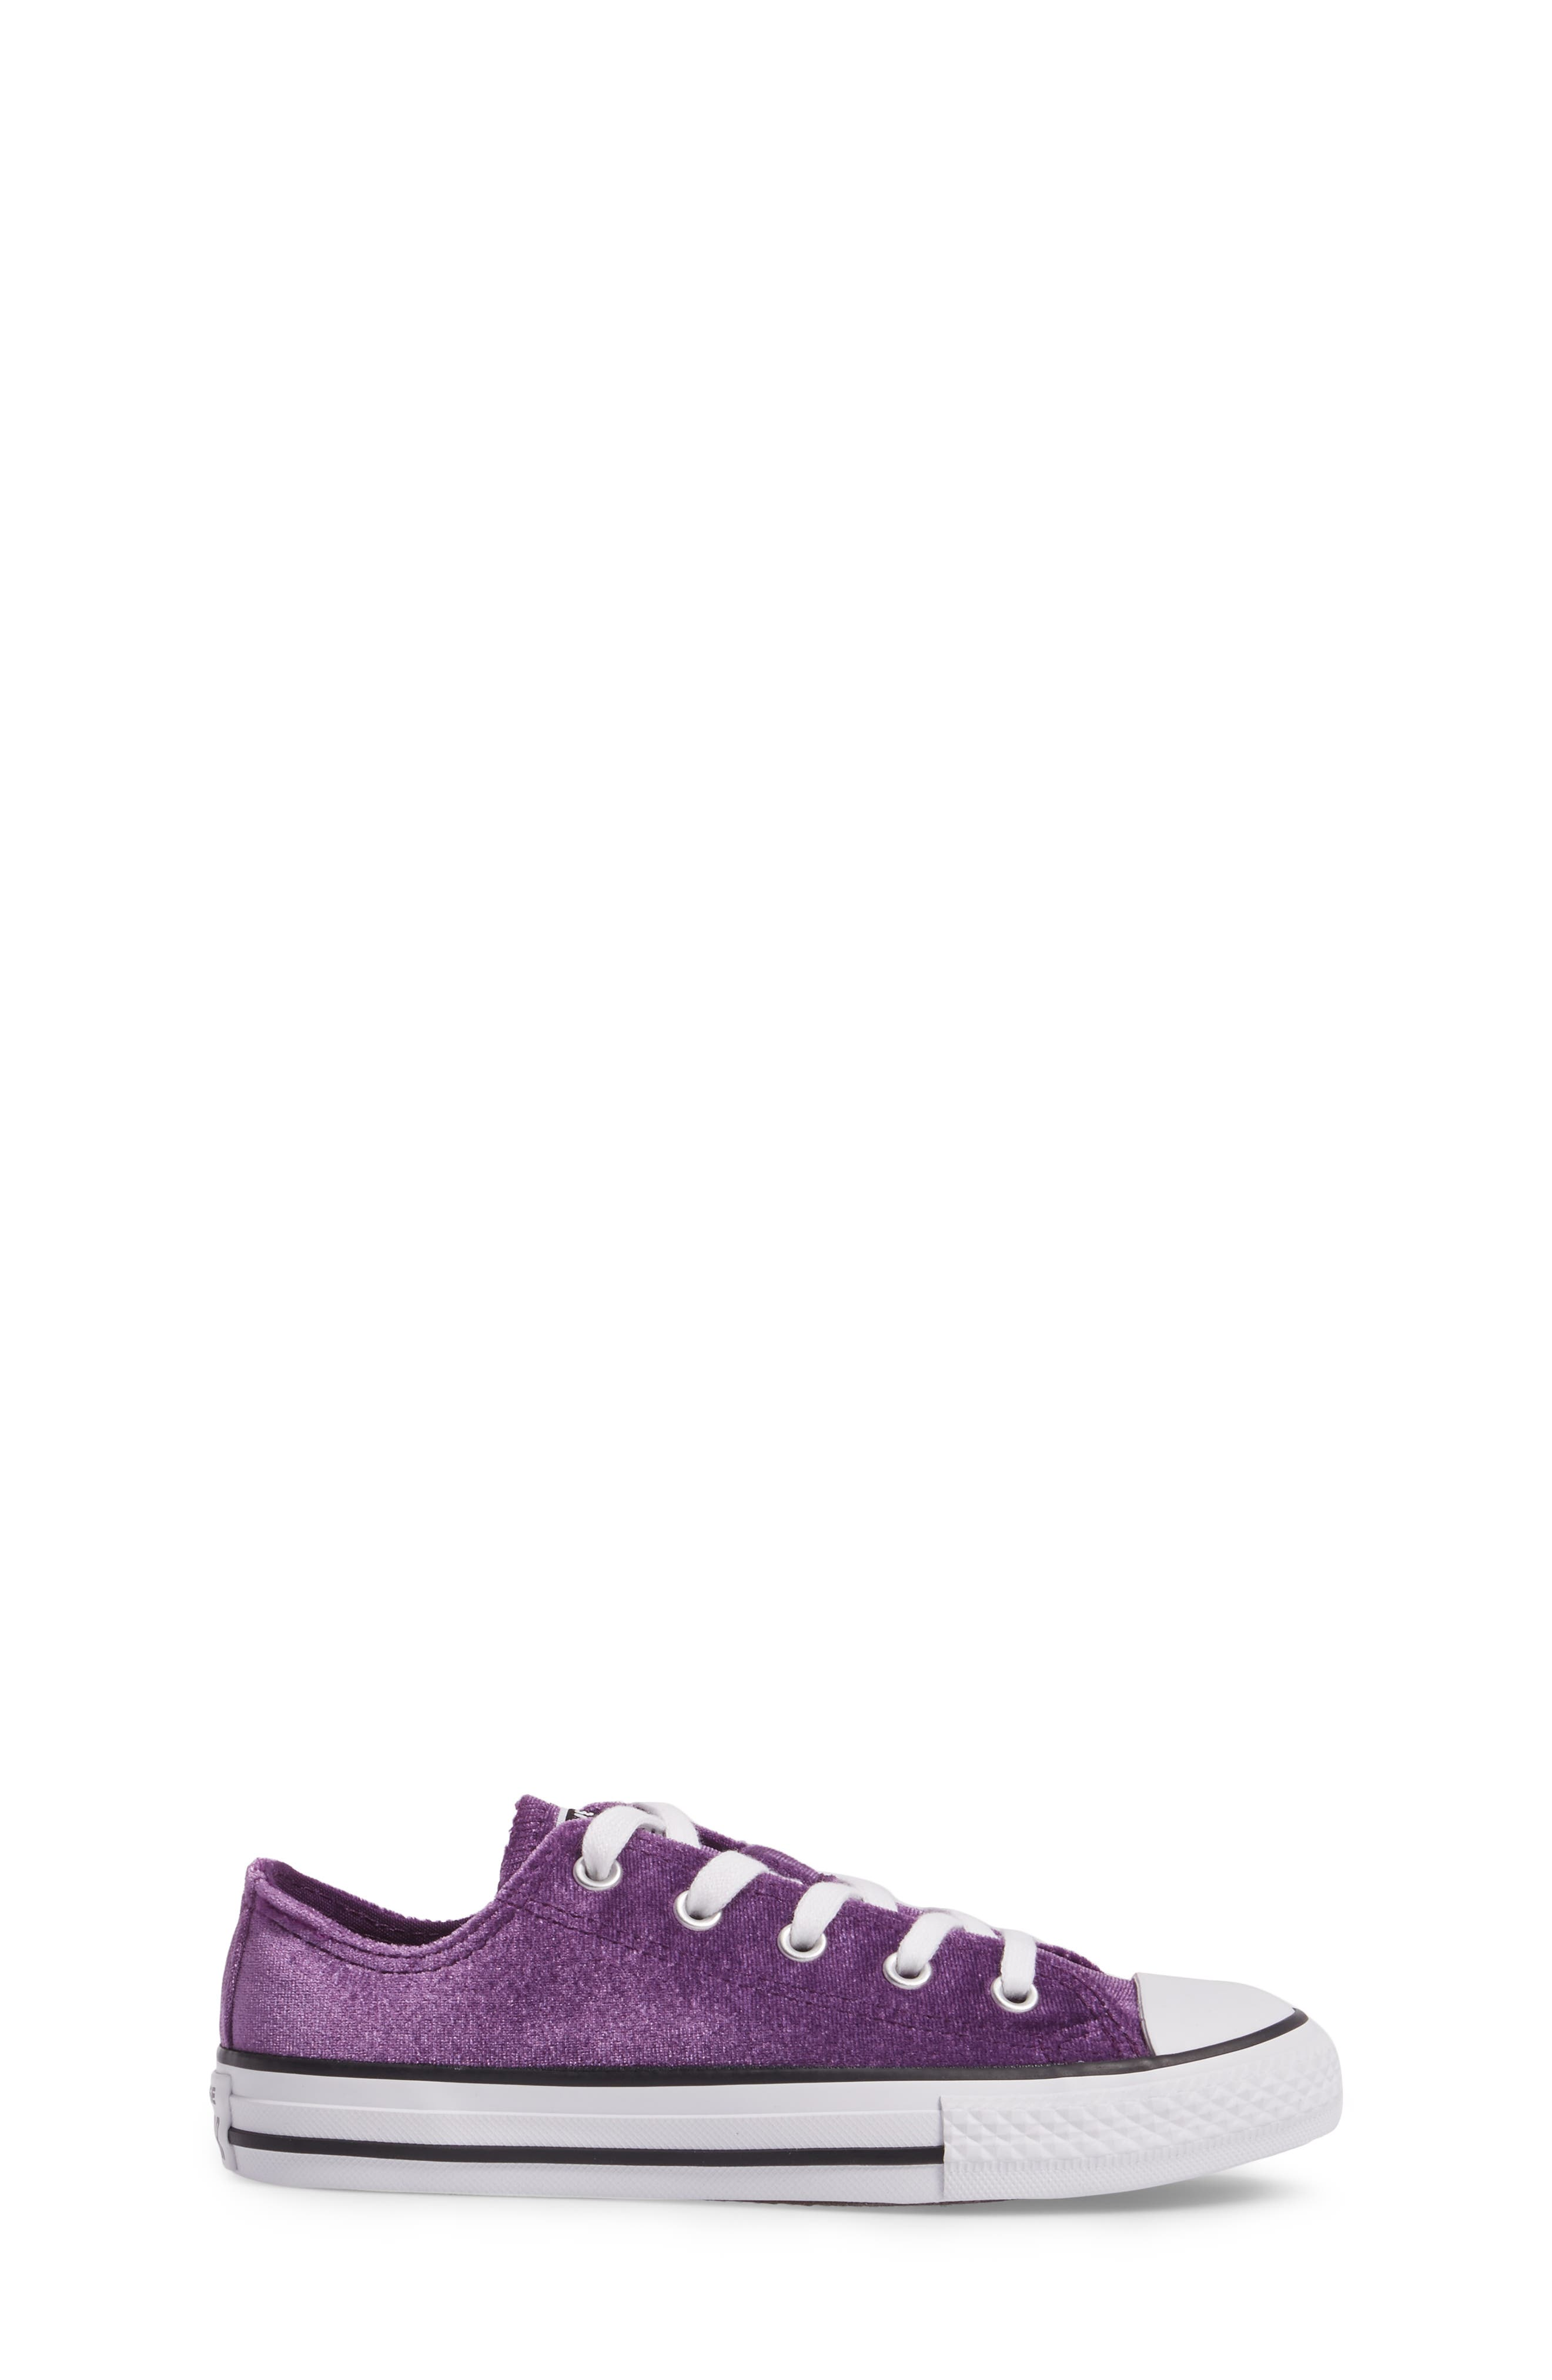 Chuck Taylor<sup>®</sup> All Star<sup>®</sup> Velvet OX Low Top Sneaker,                             Alternate thumbnail 3, color,                             500